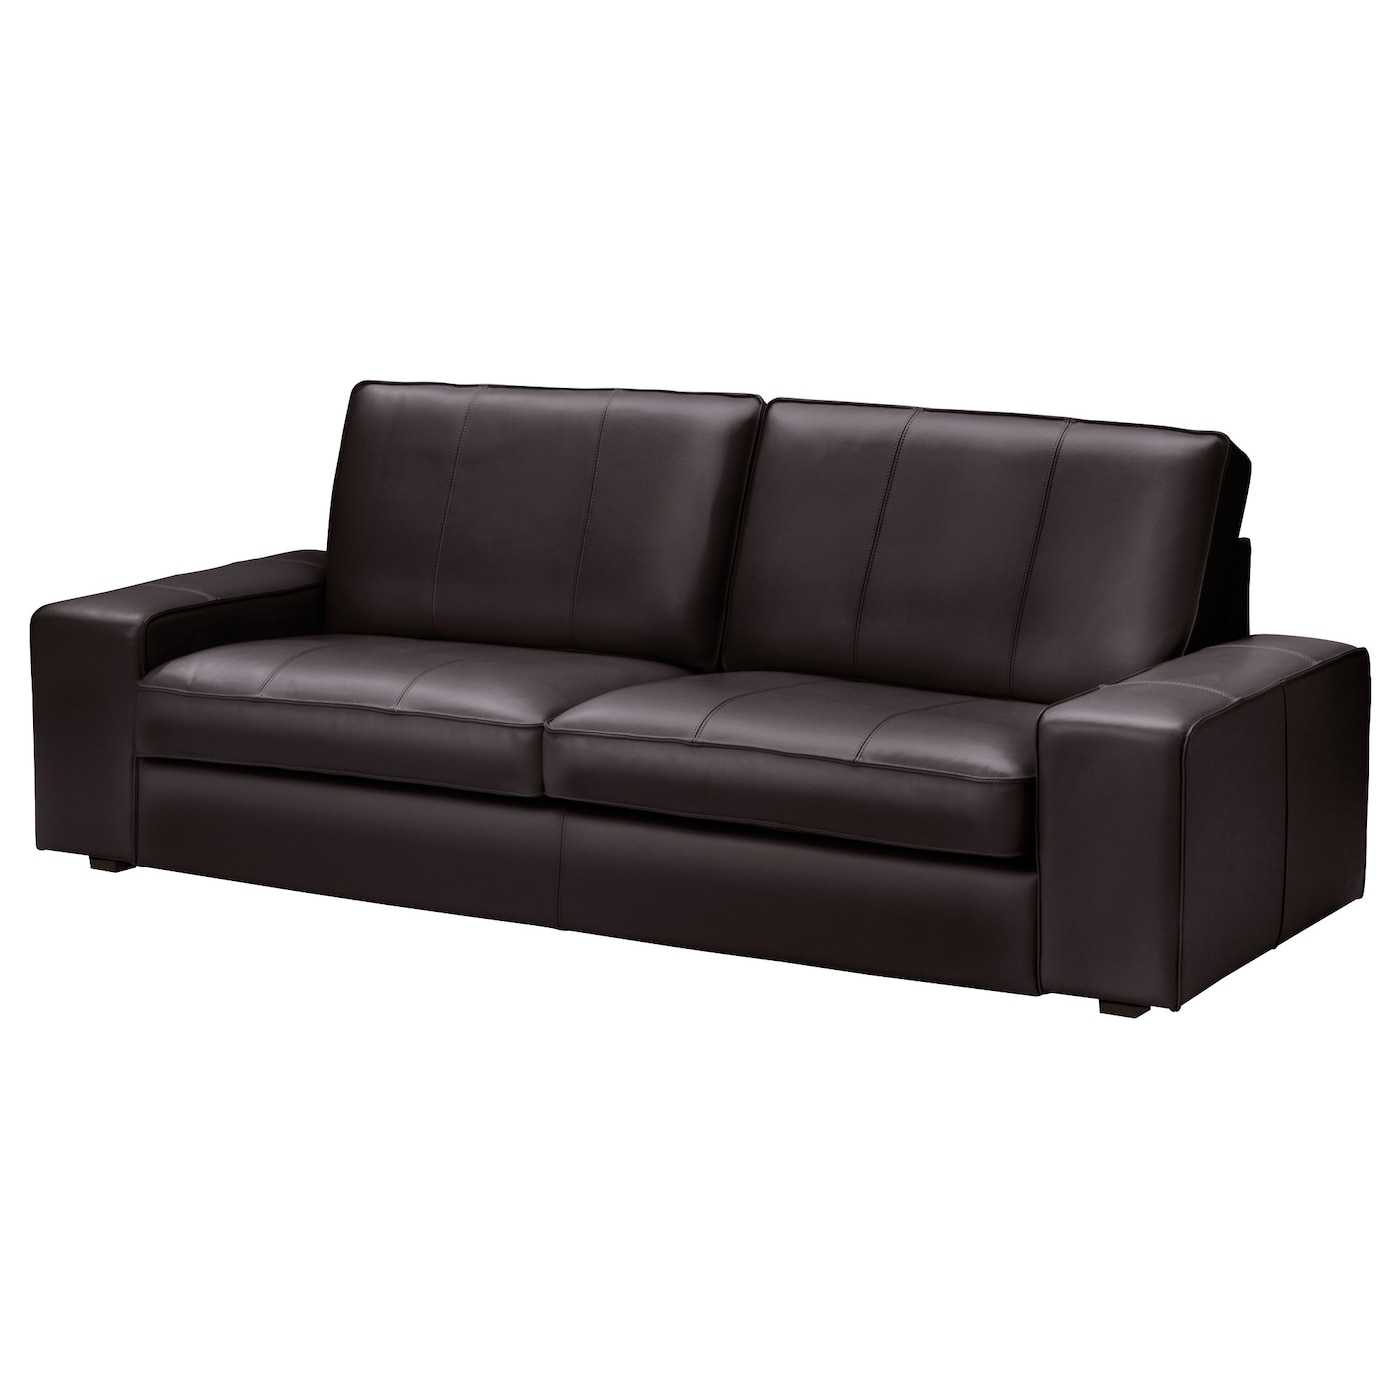 Kivik three seat sofa grann bomstad dark brown ikea for Sofa kivik 3 plazas